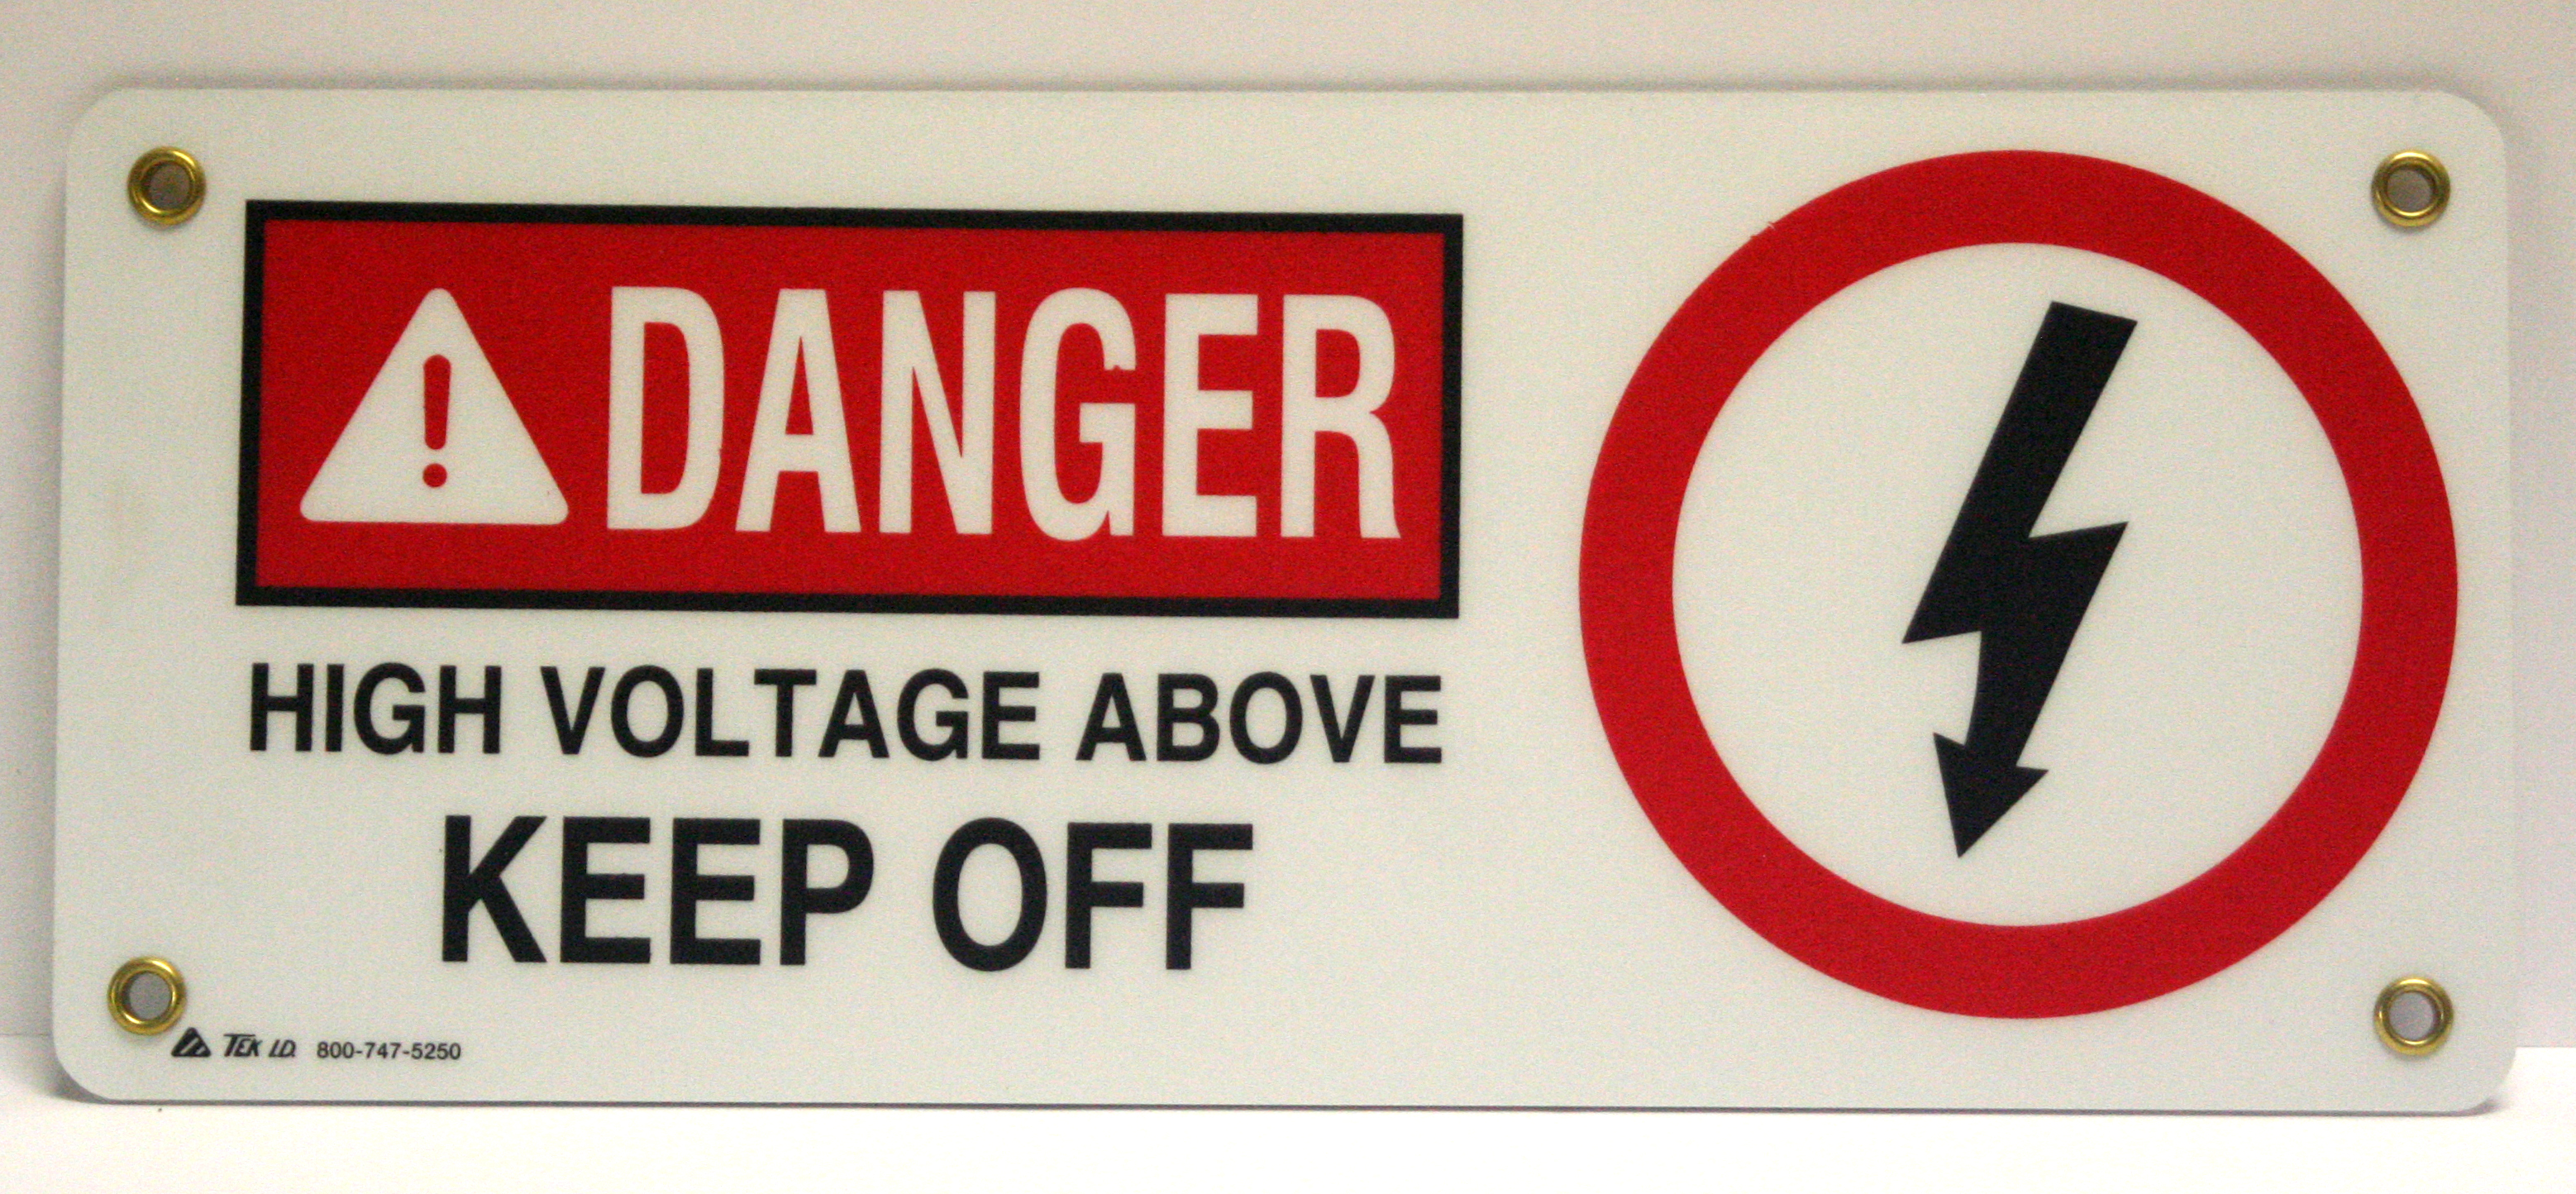 danger, high voltage, keep off, sign